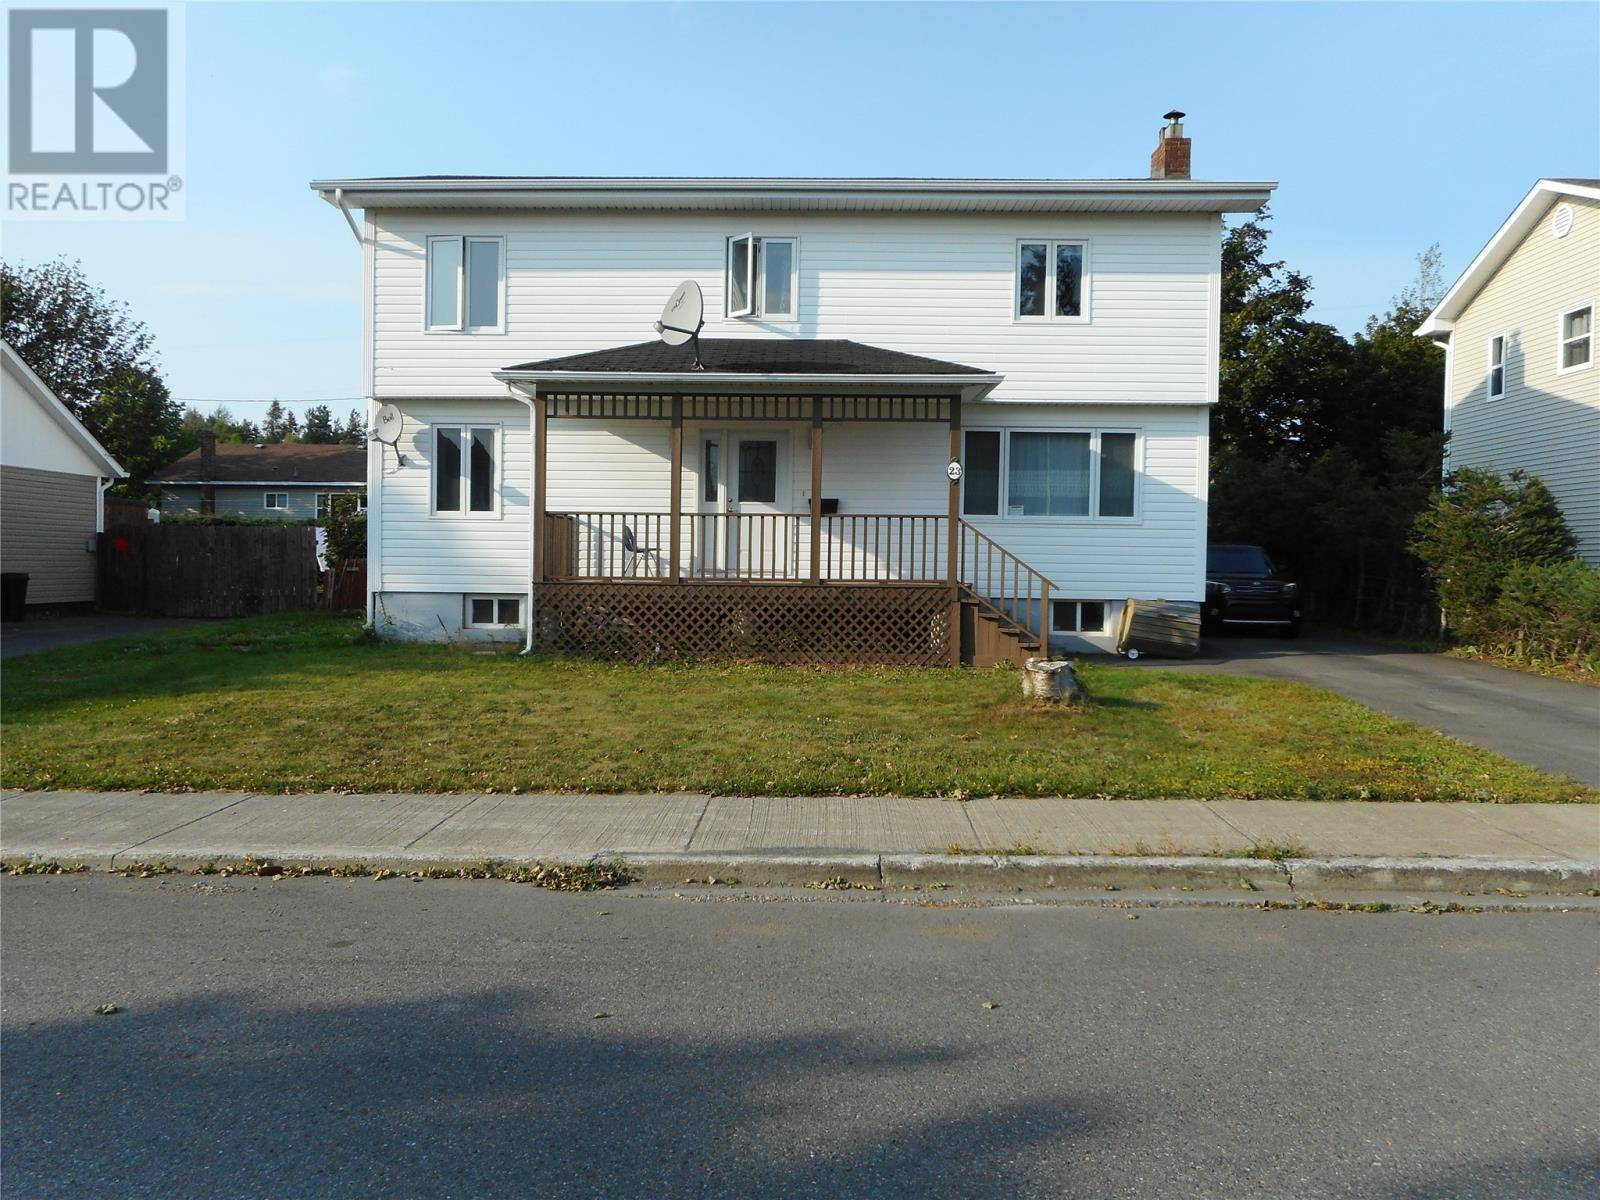 House for sale at 23 Greenwood Ave Grand Falls - Windsor Newfoundland - MLS: 1203044